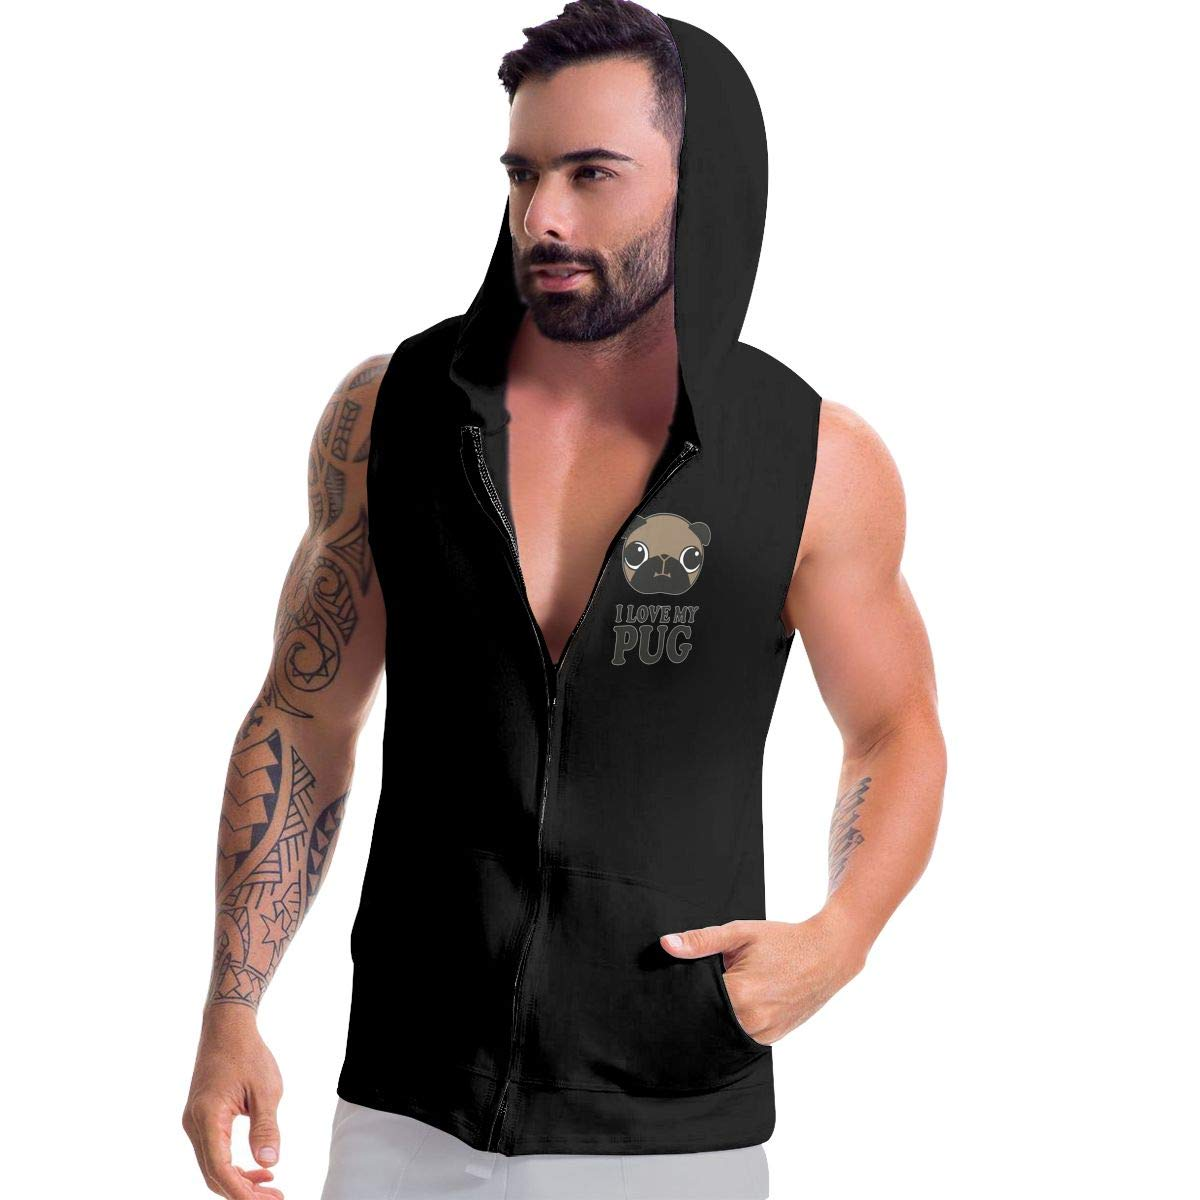 I Love My Pug Mens Sleeveless Zipper Hoodie Sweatshirt Active Workout Tank Top